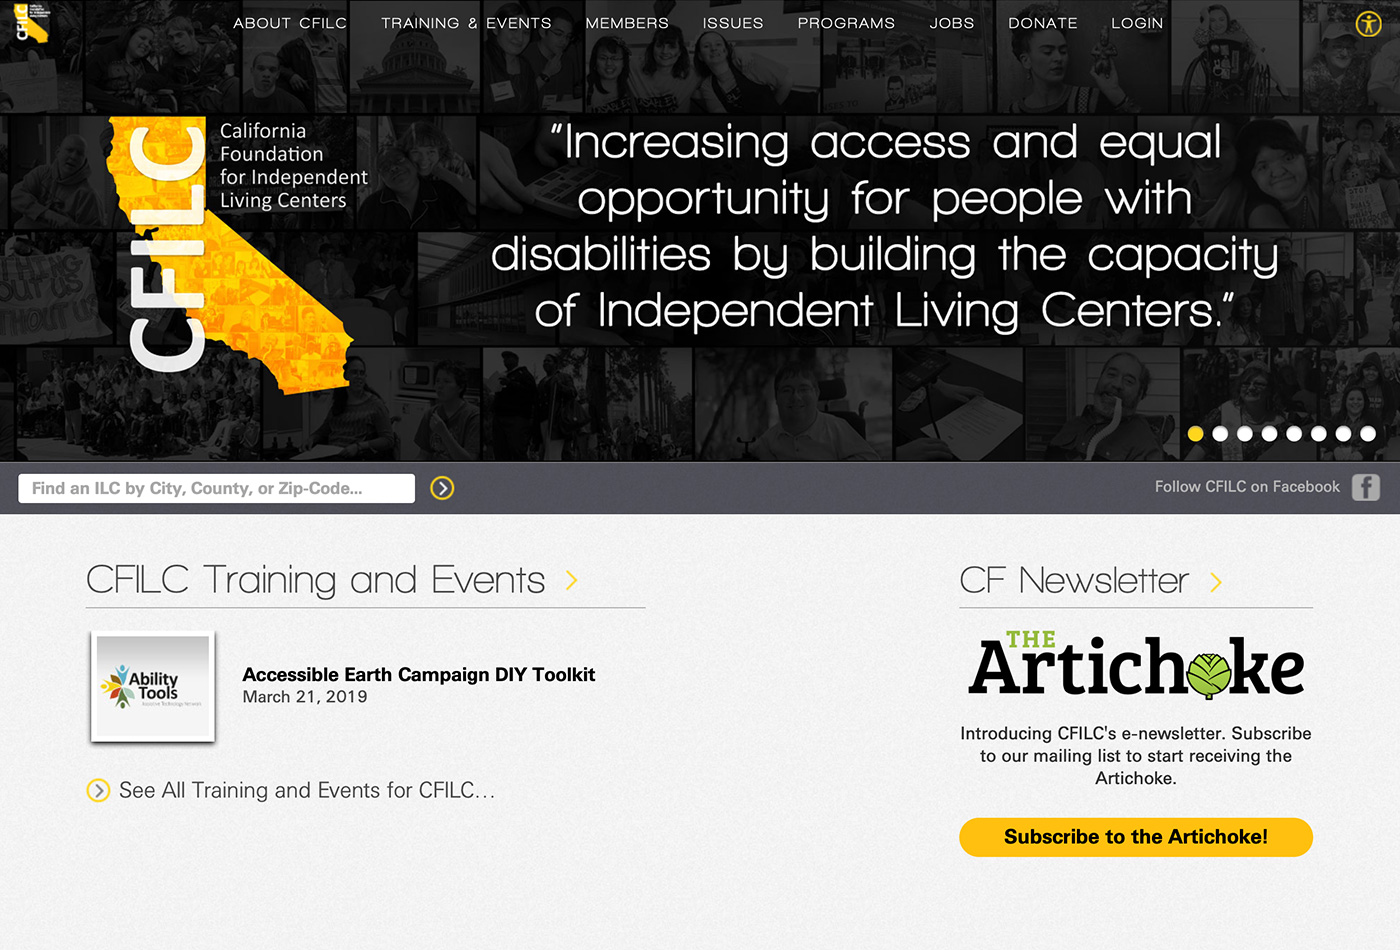 Screenshot of the CFILC website.